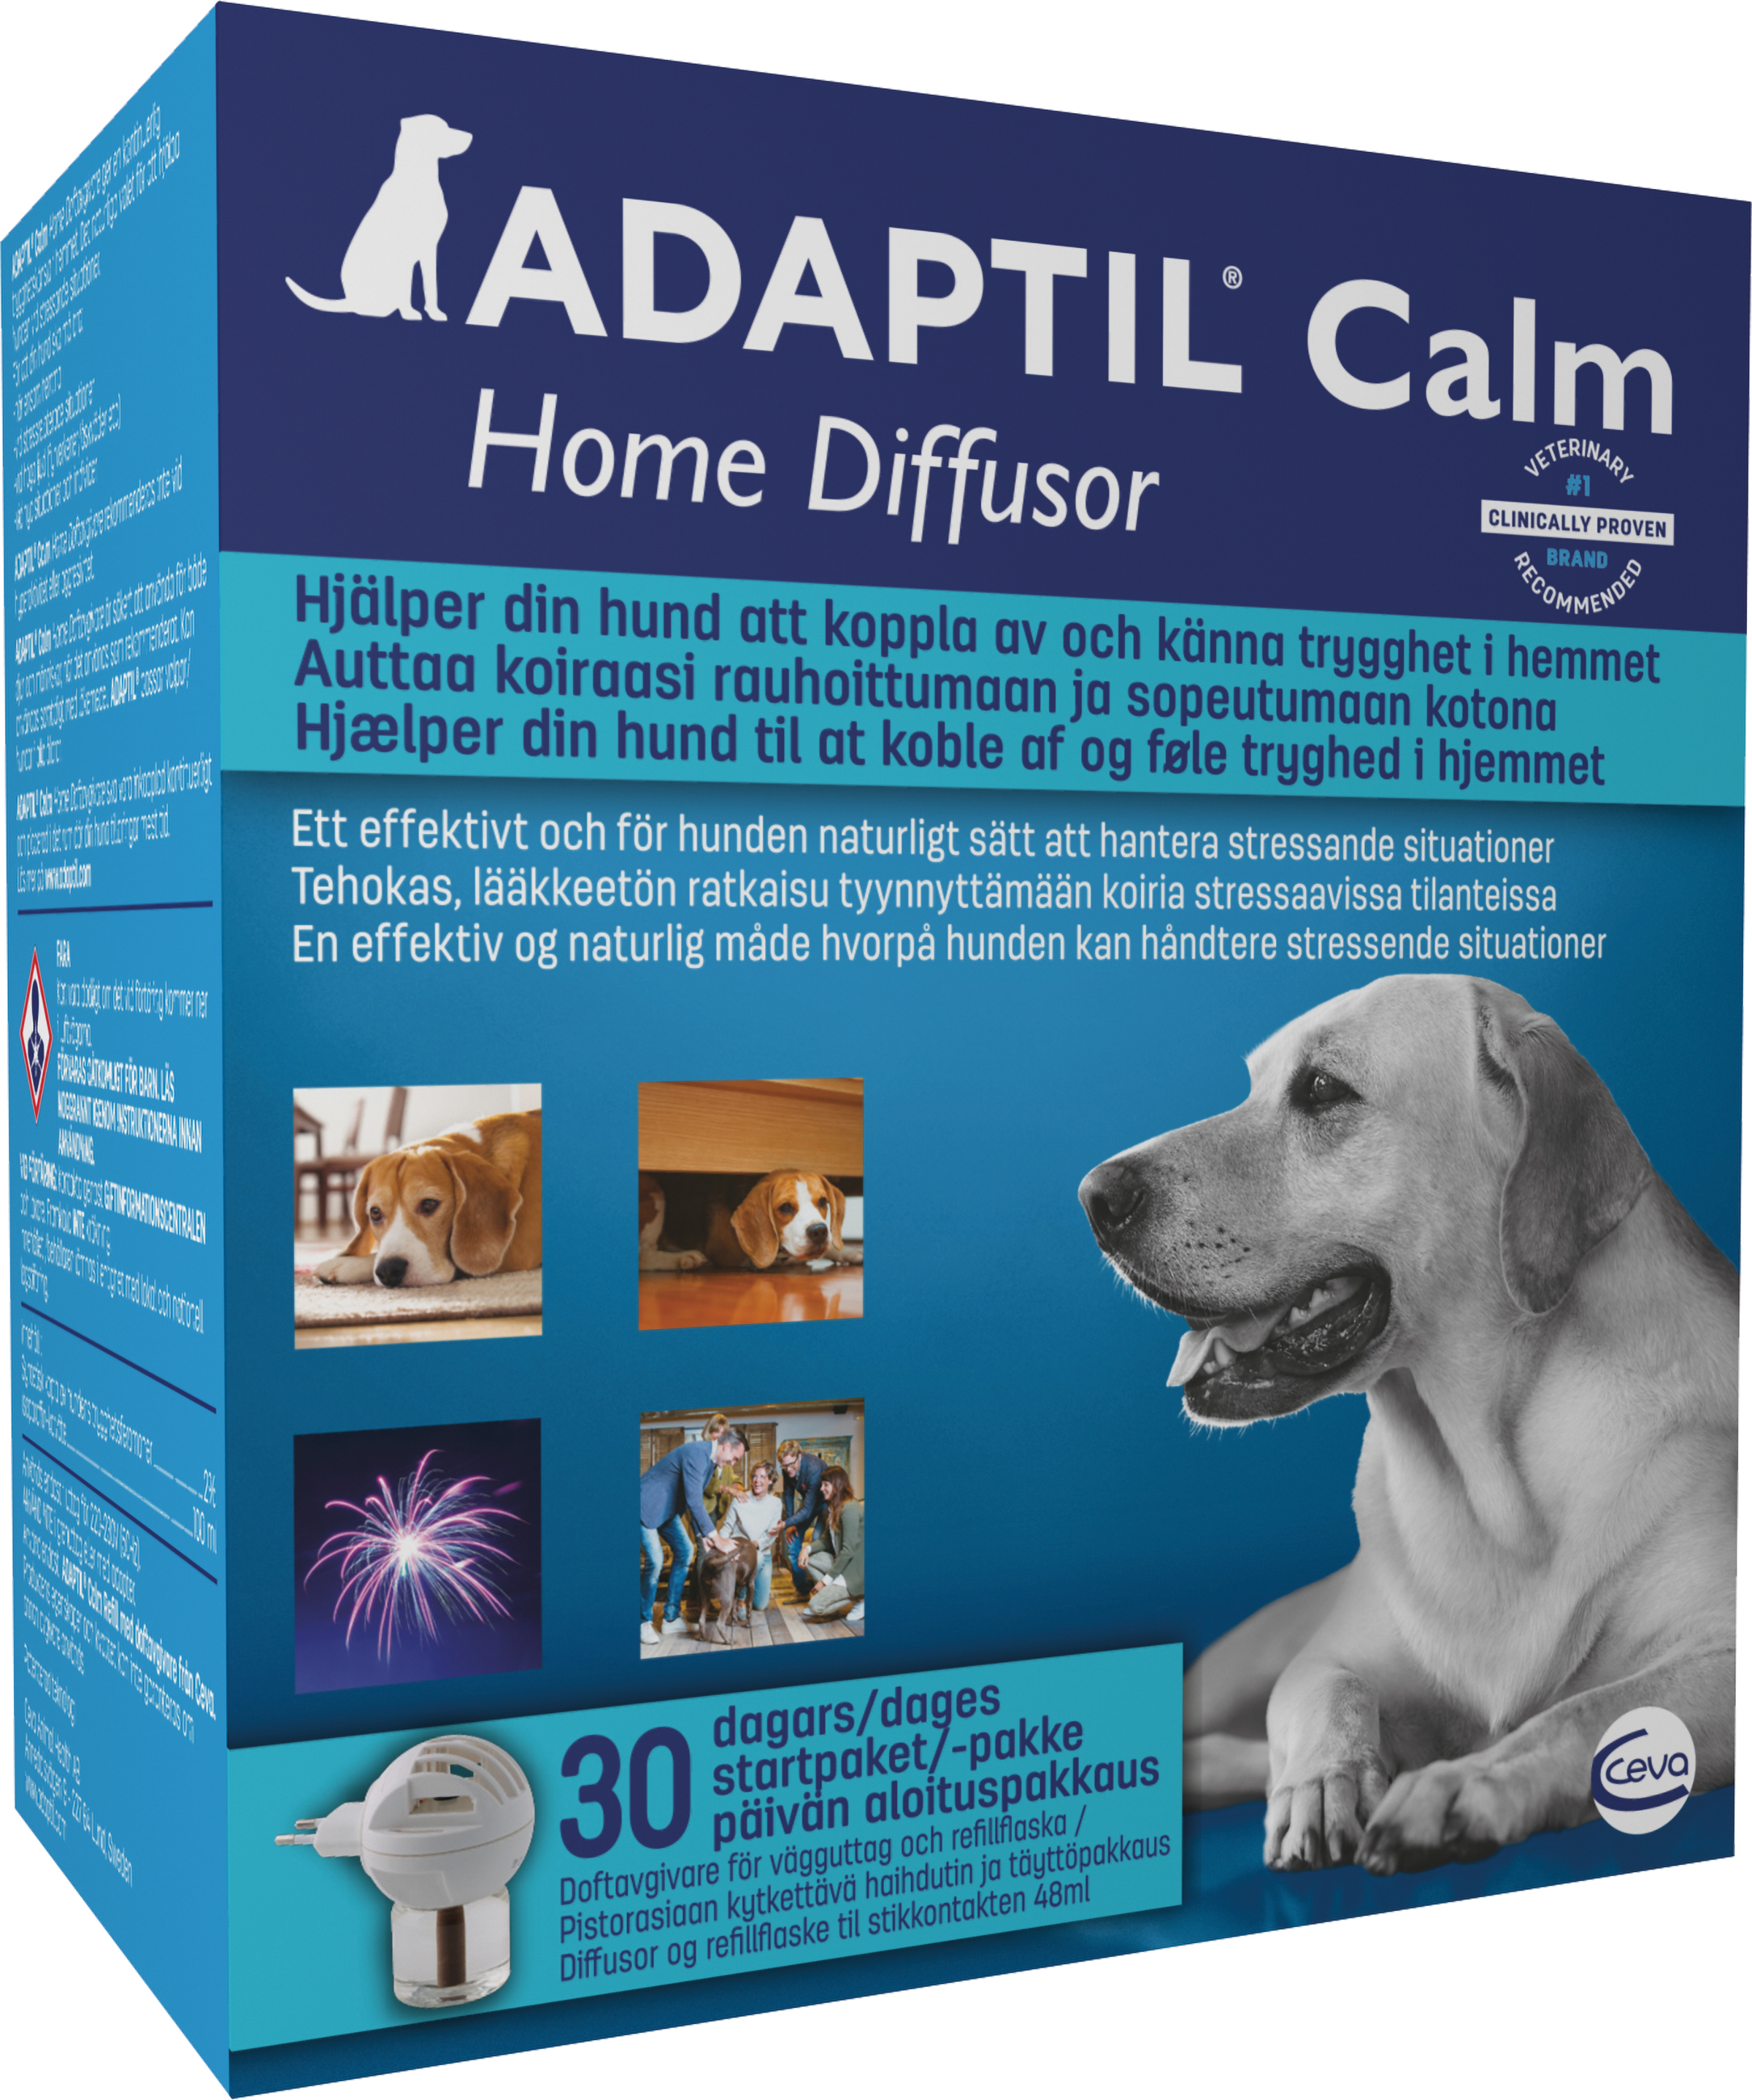 Adaptil Calm Home Doftavgivare